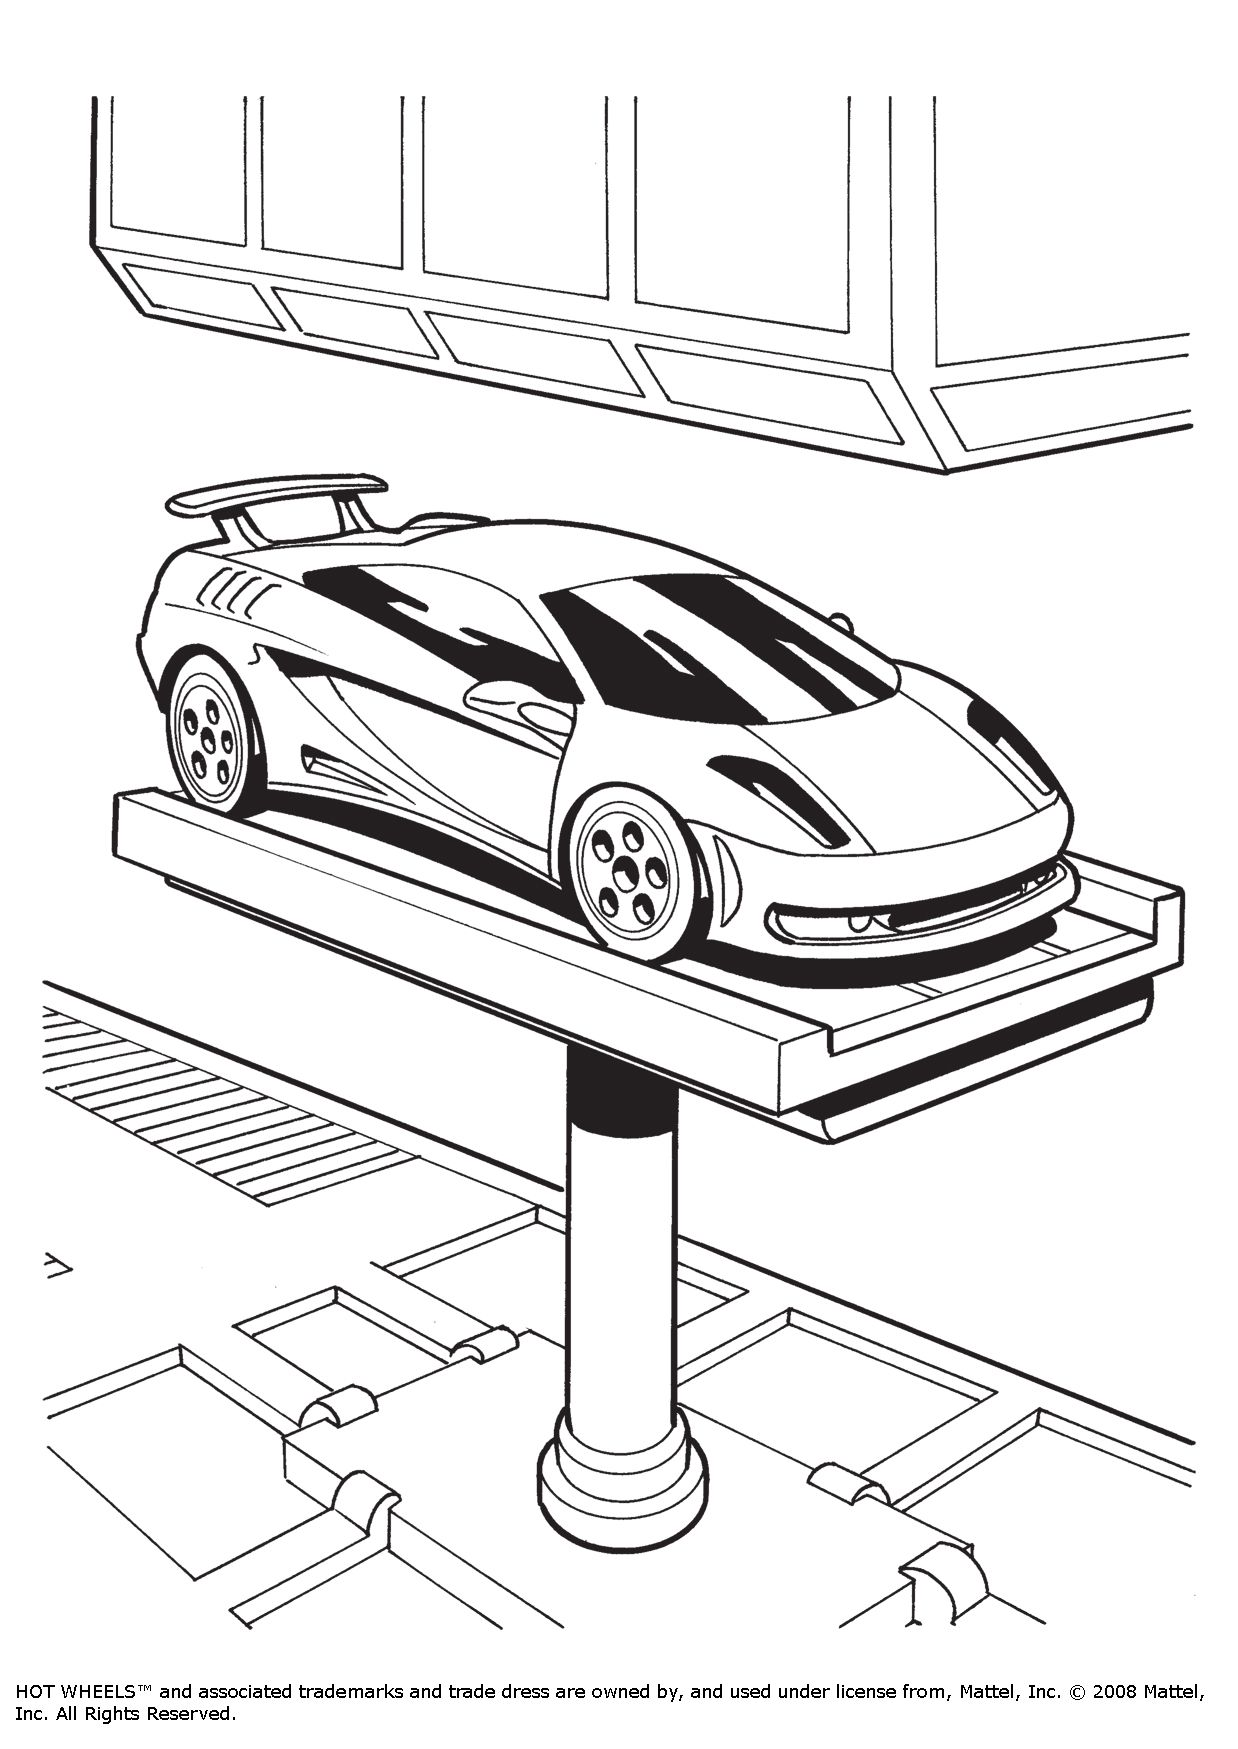 Coloring pages for hot wheels - Nice Hot Wheels Cars Coloring Pages